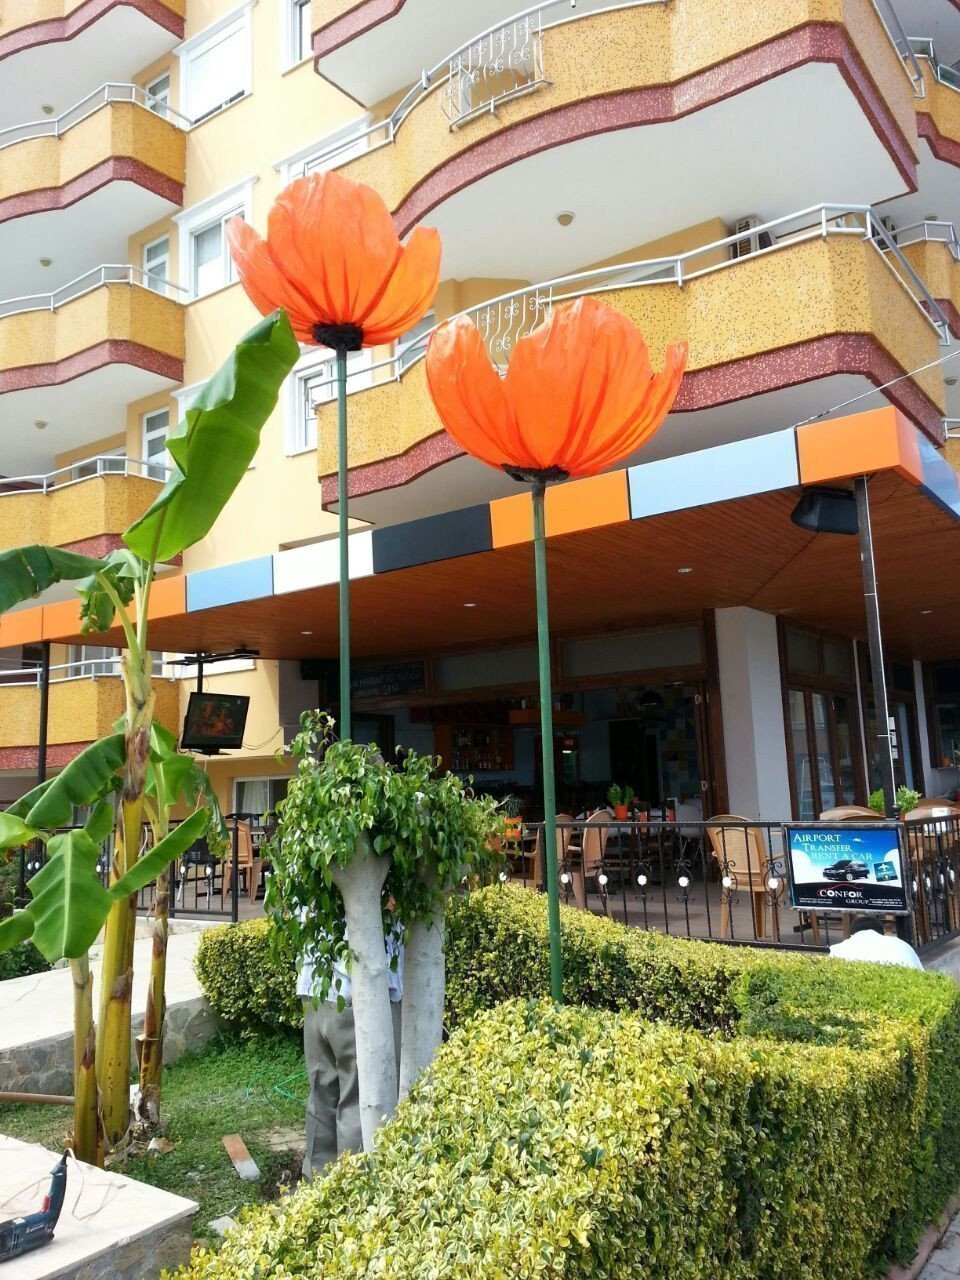 Sale property abroad Sale of restaurant with a guaranteed income in Alanya